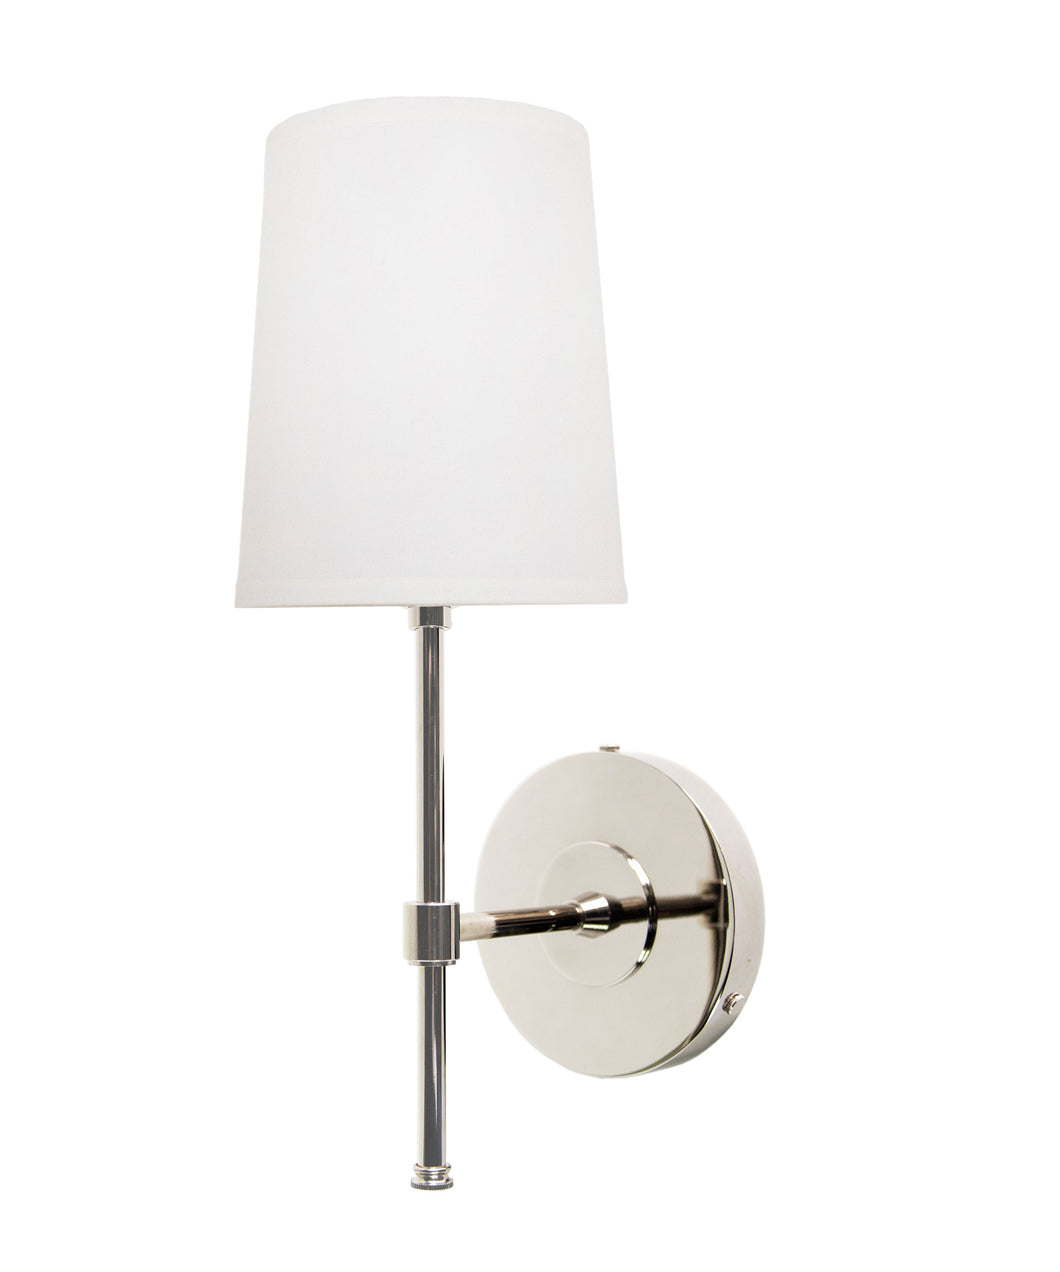 Annapolis Wall Sconce with Linen Shade, Polished Nickel